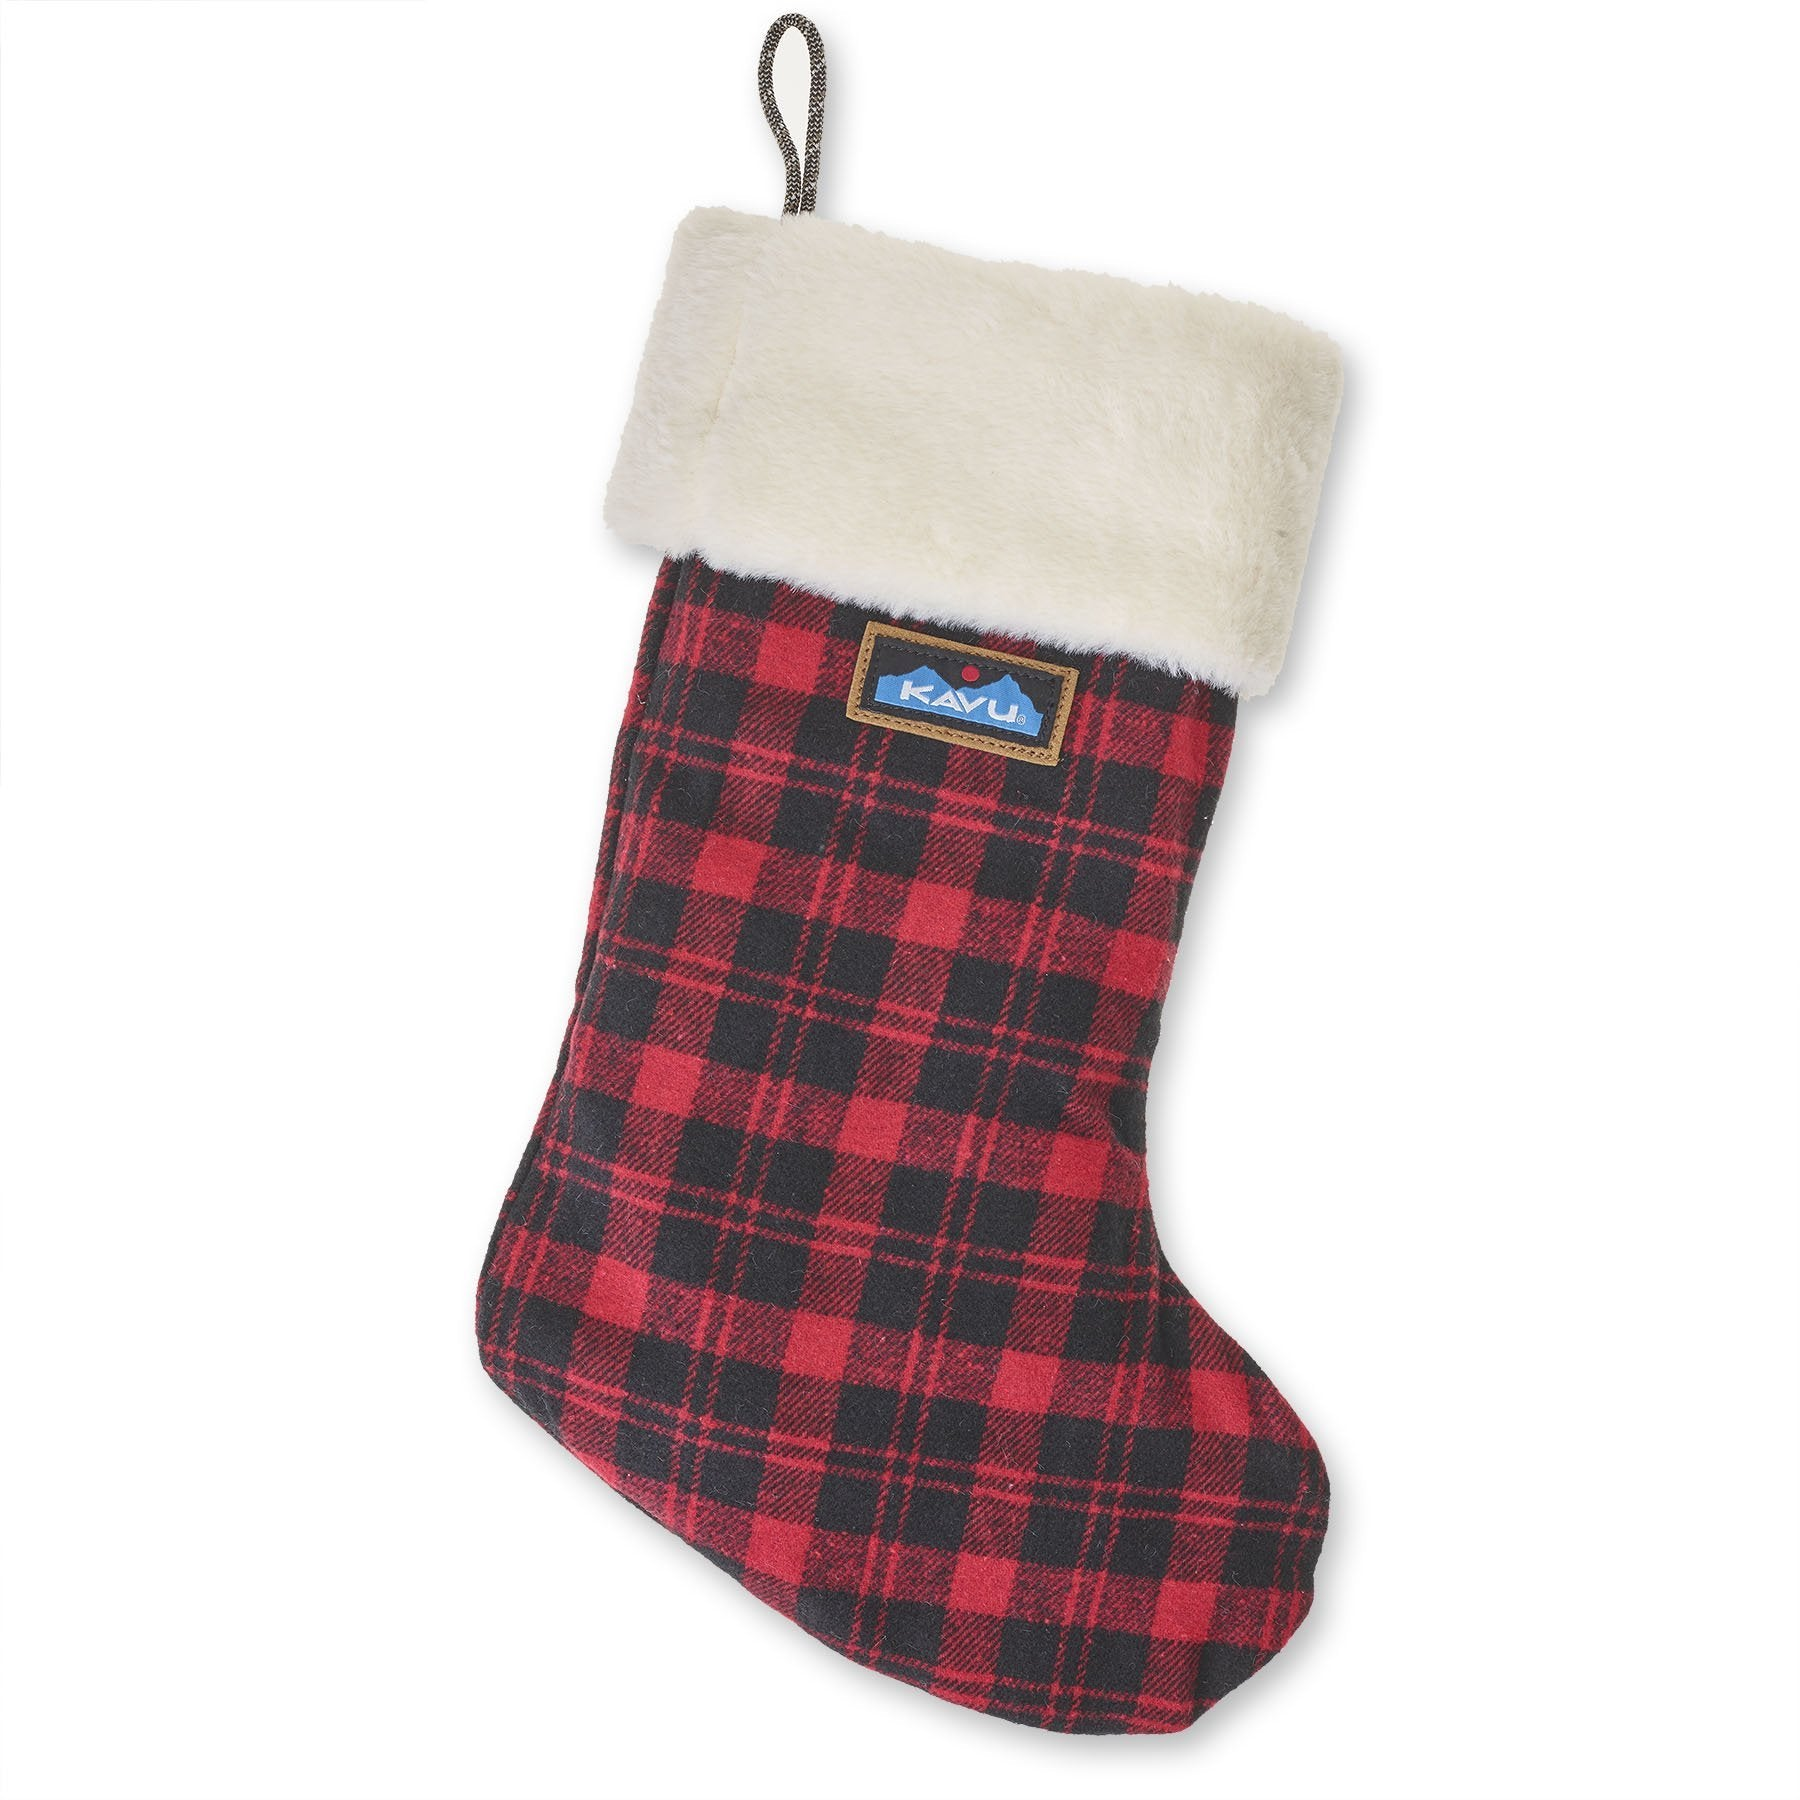 Kavu Stocking - Lumberjack